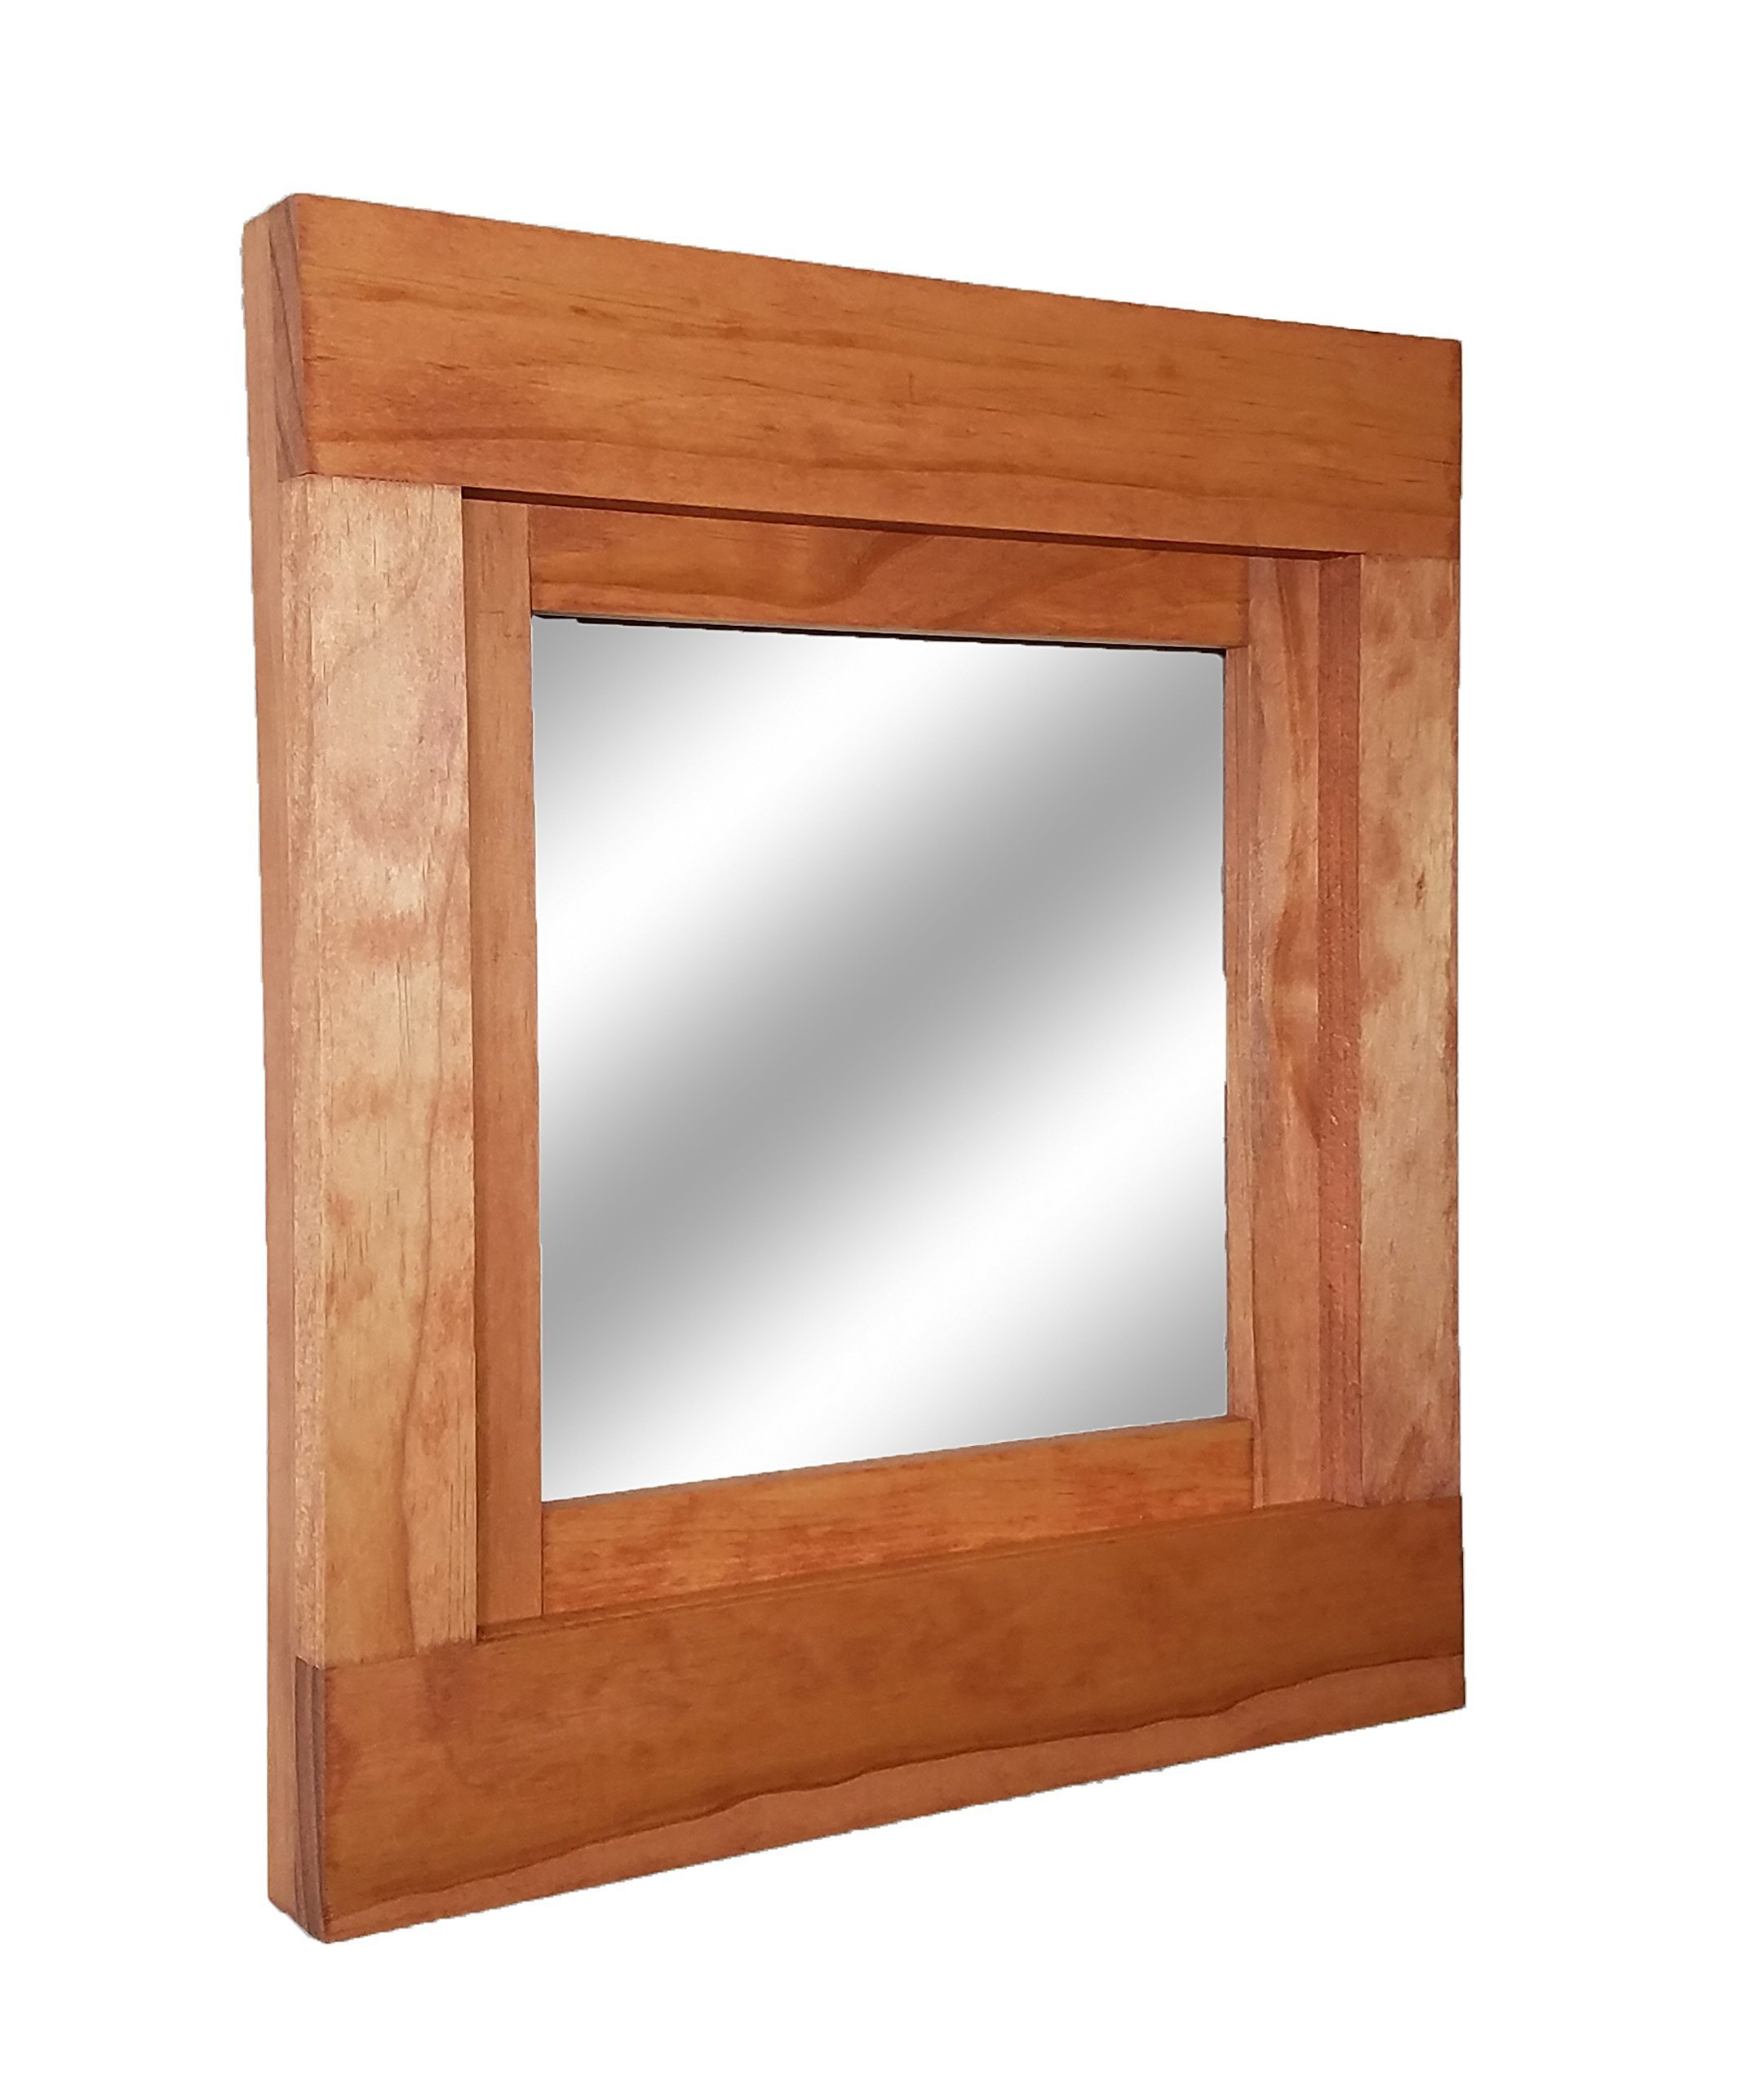 Farmhouse Accent Framed Mirror Available in Two Sizes and 20 Colors - Wall Mirror - Rustic Barn Style Home Decor – Barnwood - Housewares - Woodwork - by Renewed Decor